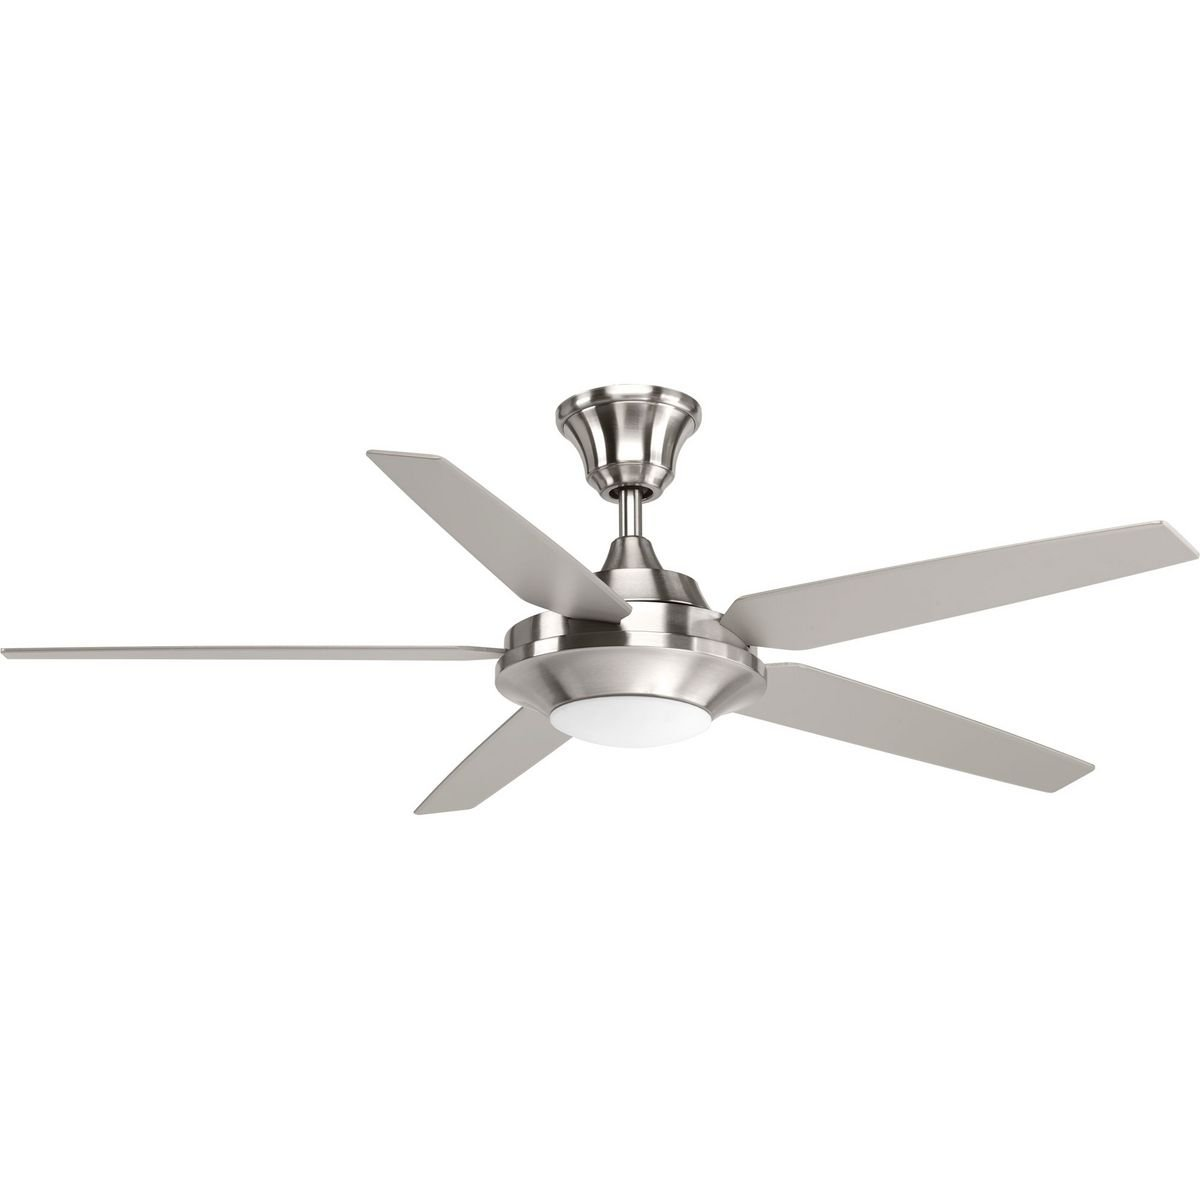 Progress Lighting P2539-0930K 54IN 5 Blade Fan W LED LGT, Brushed Nickel